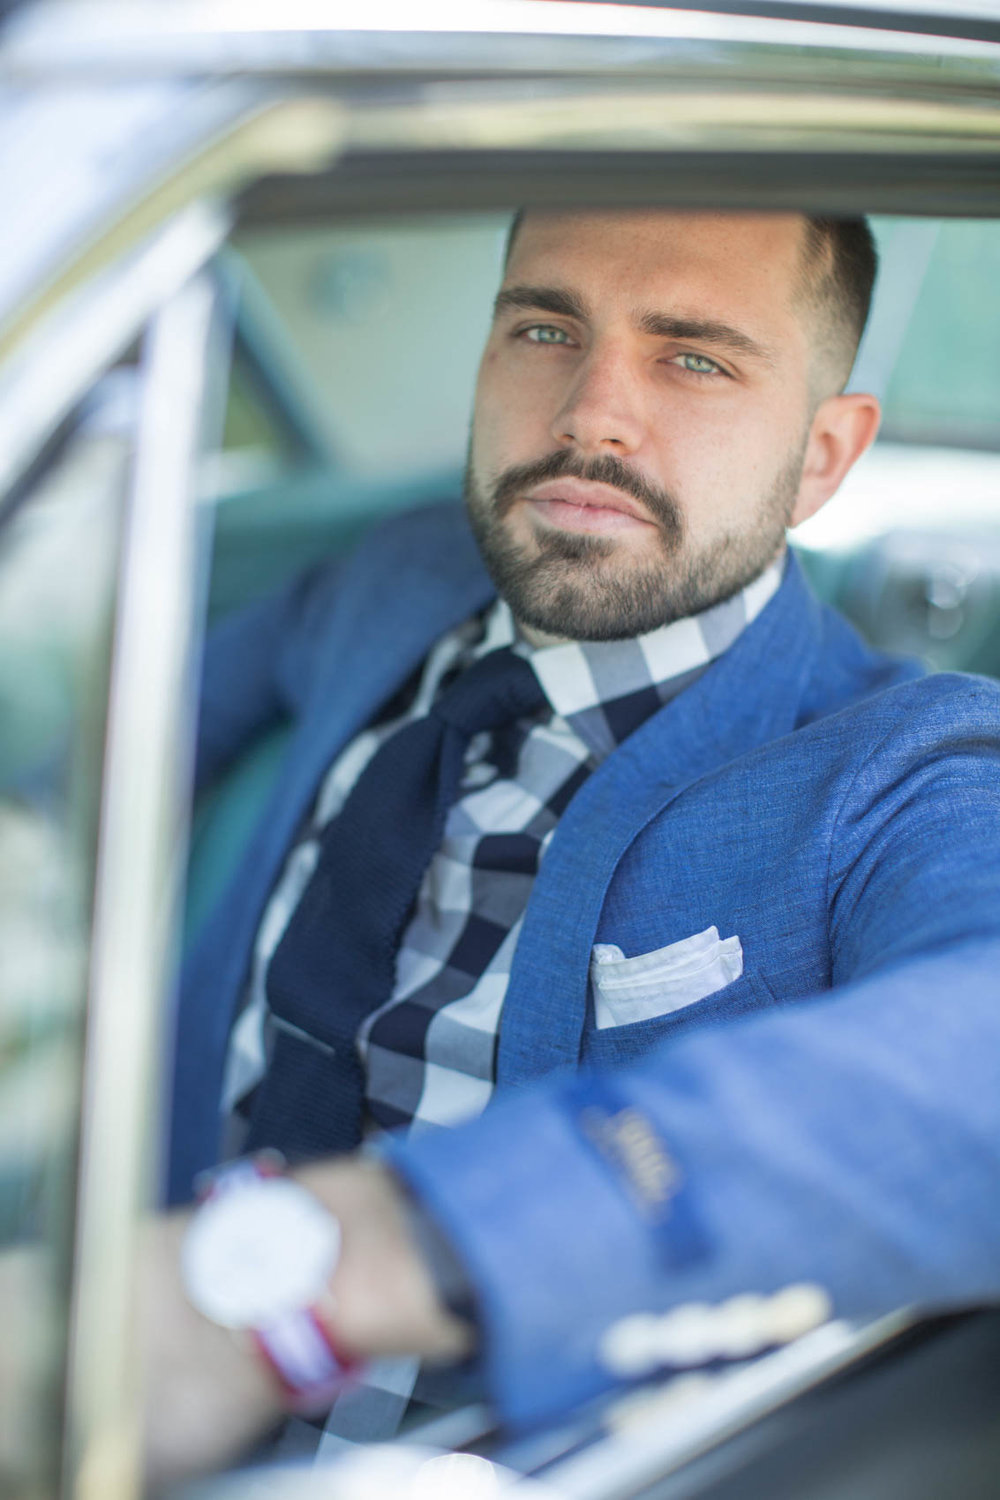 Male in gingham shirt with sport coat and pocket square